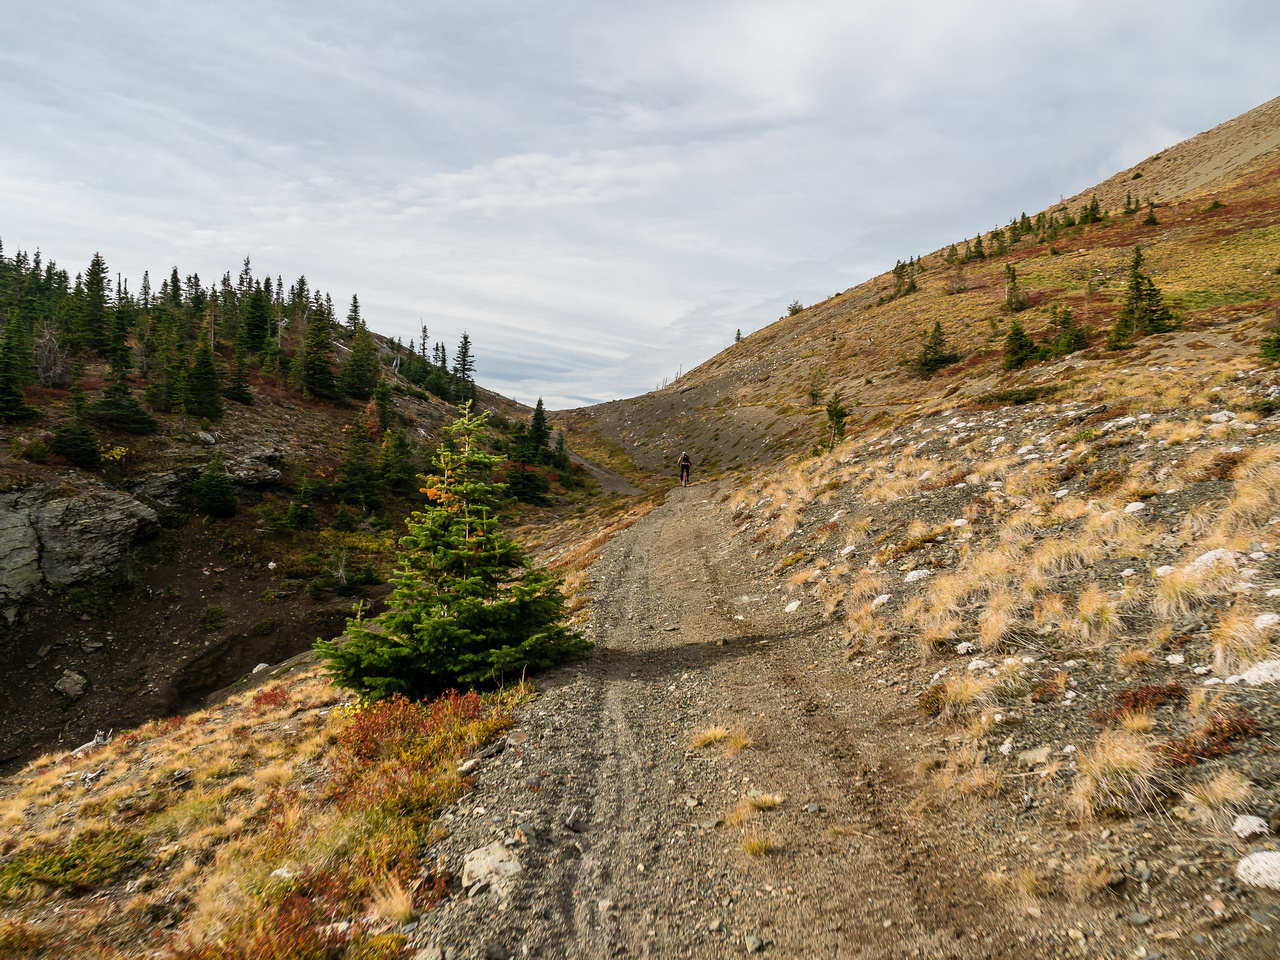 One more uphill section to the AB/BC border at the pass.